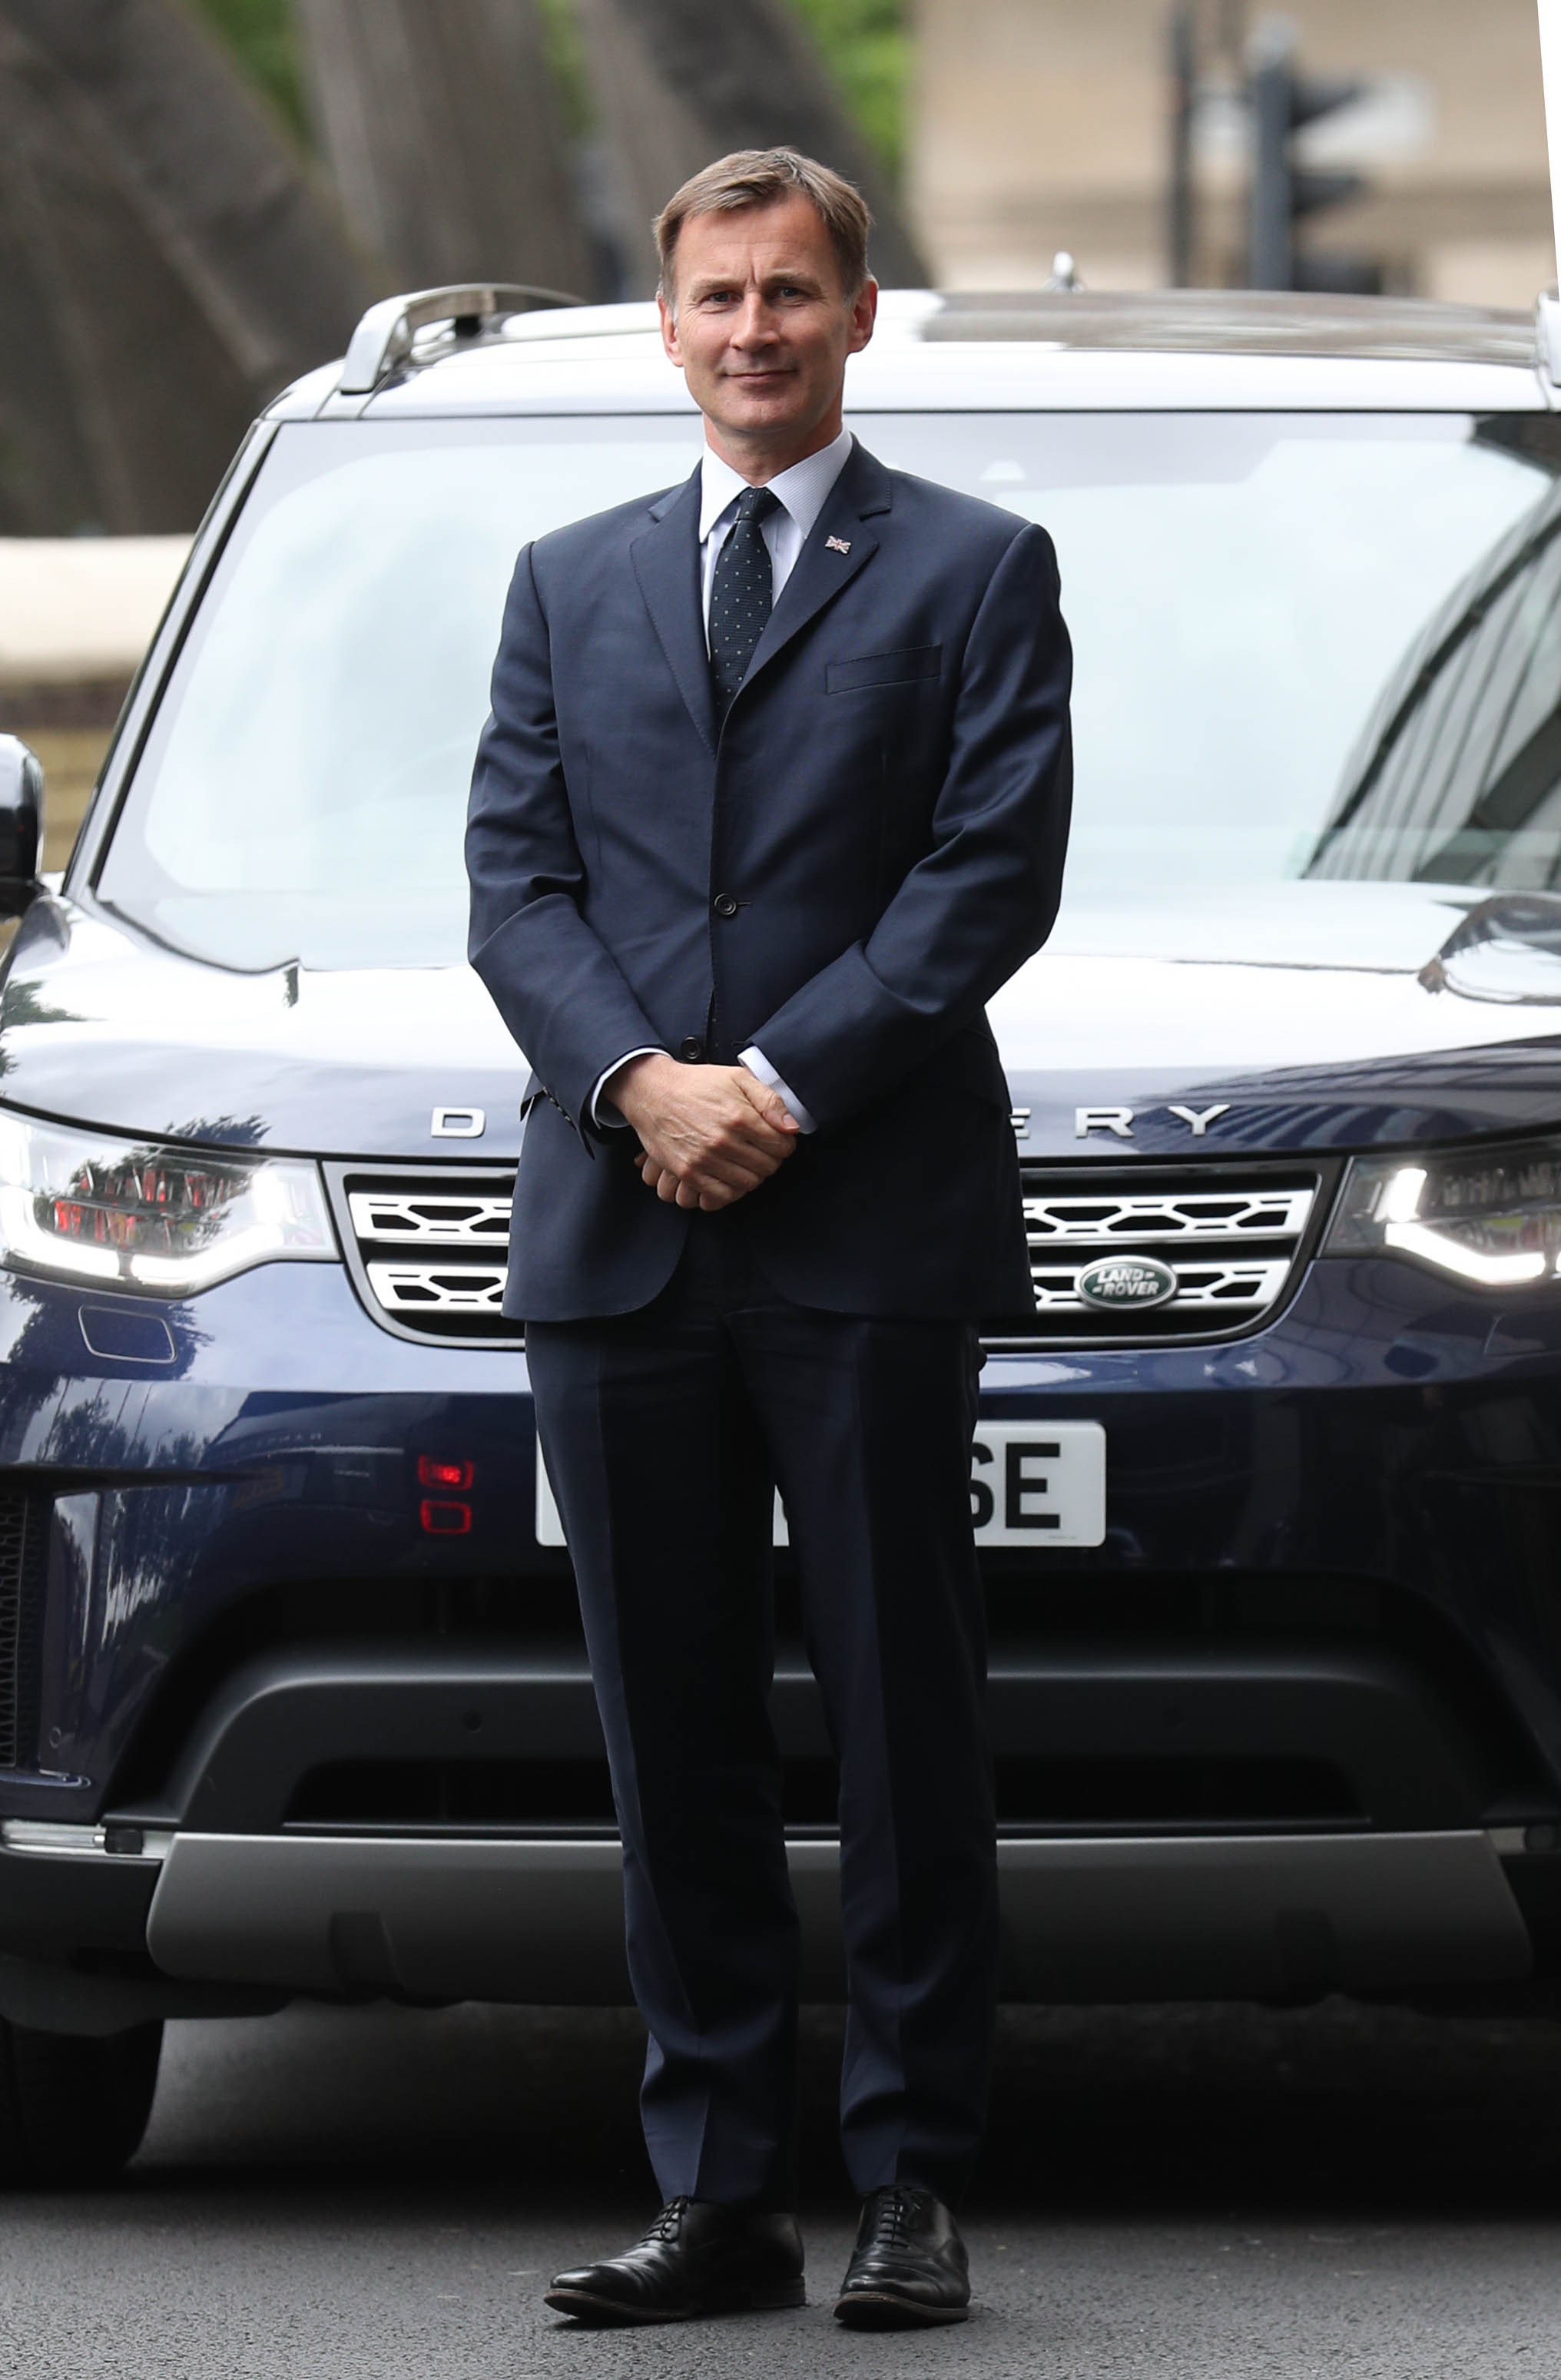 Conservative party leadership contender Jeremy Hunt arriving for the Conservative National Convention meeting at the Park Plaza Riverbank Hotel, central London.